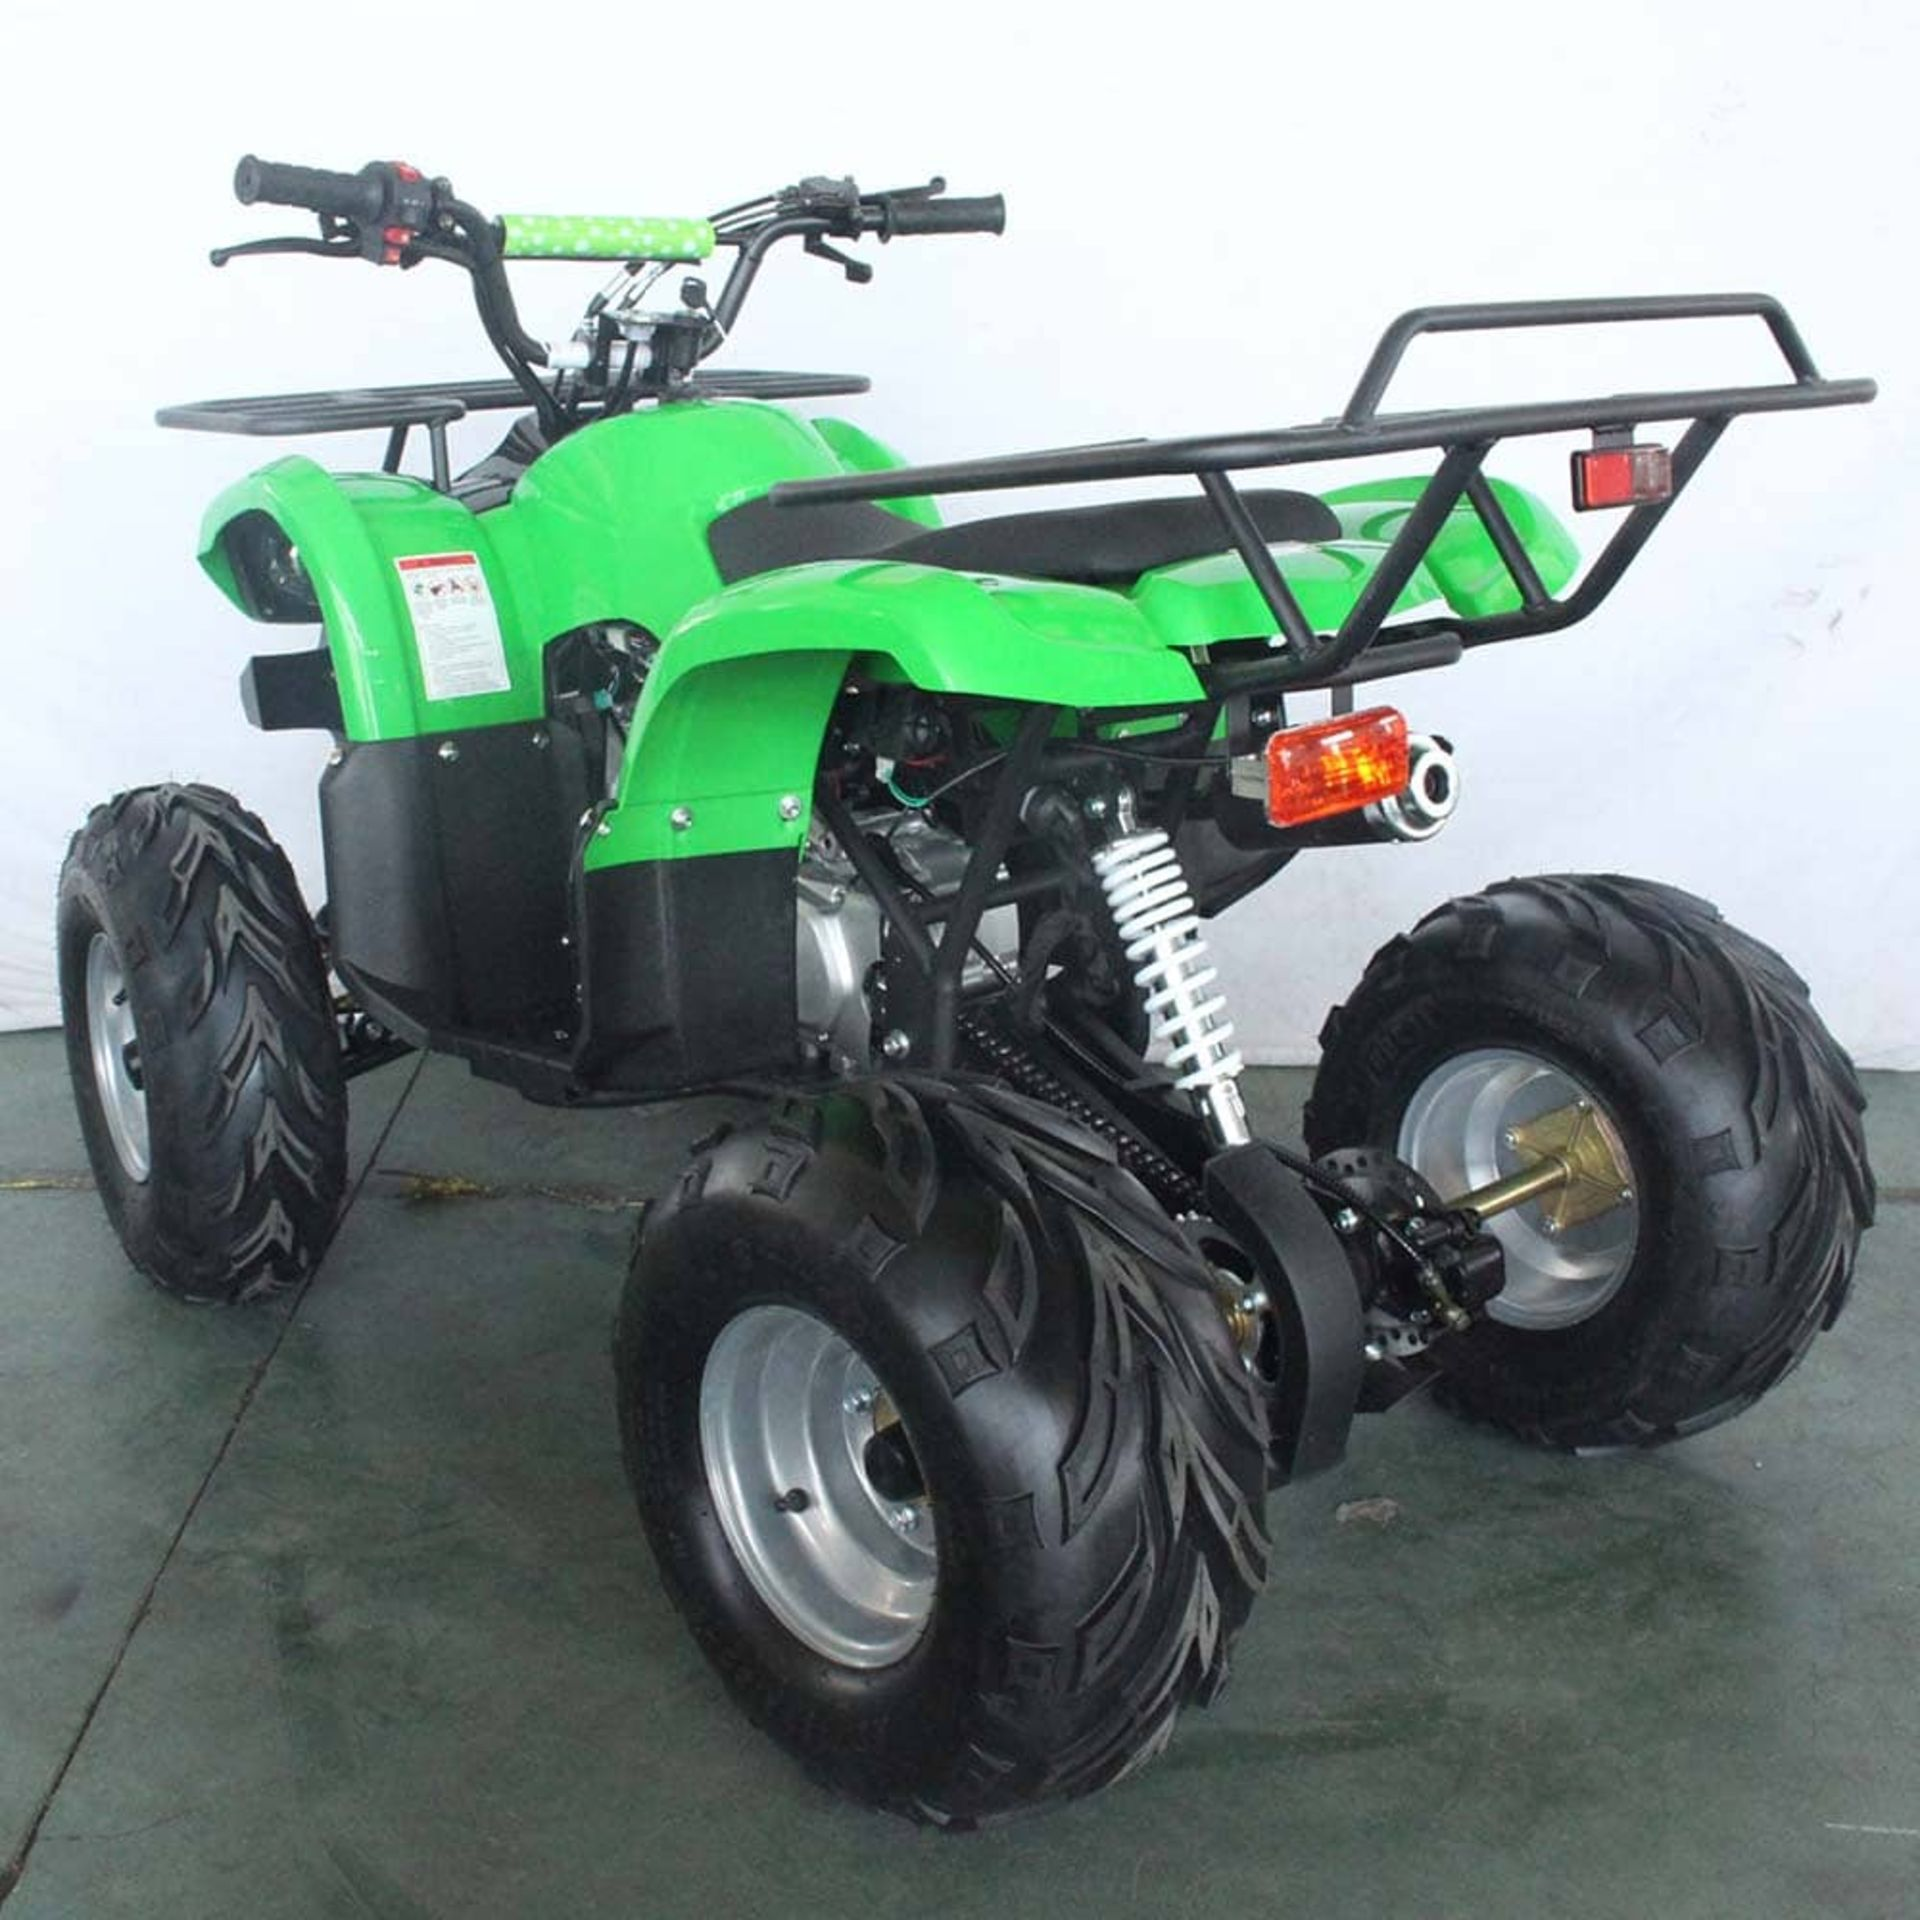 + VAT Brand New 125cc Condor Quad Bike - Four Stroke - Single Cylinder - Front Drum Brakes & Rear - Image 2 of 9